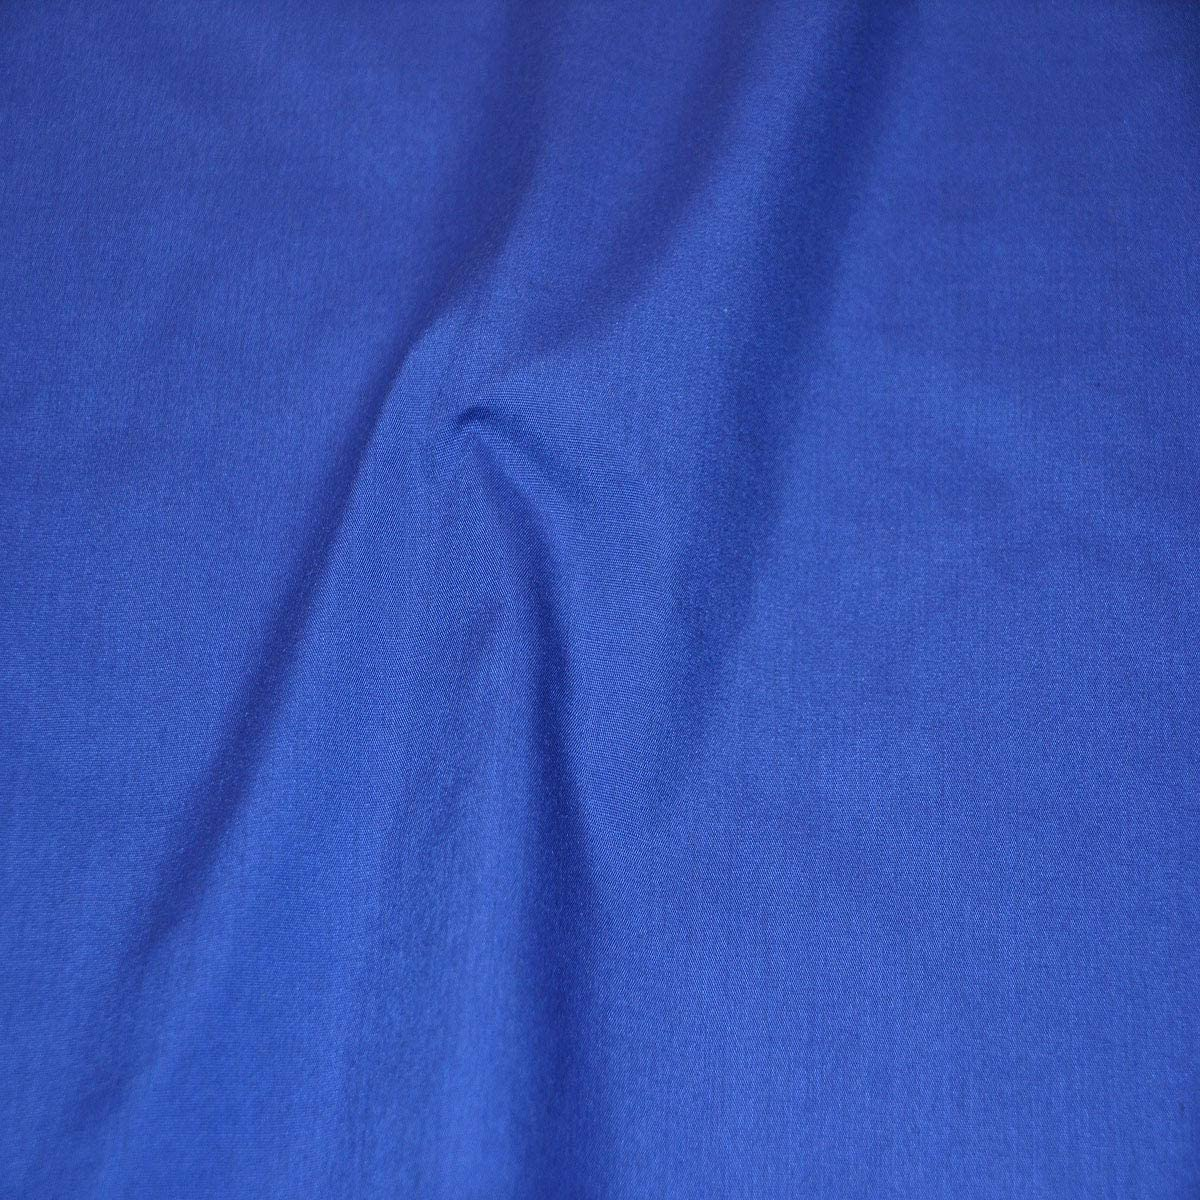 AK TRADING CO. 60 Wide Premium Cotton Blend Broadcloth Fabric by The Yard - Royal Blue